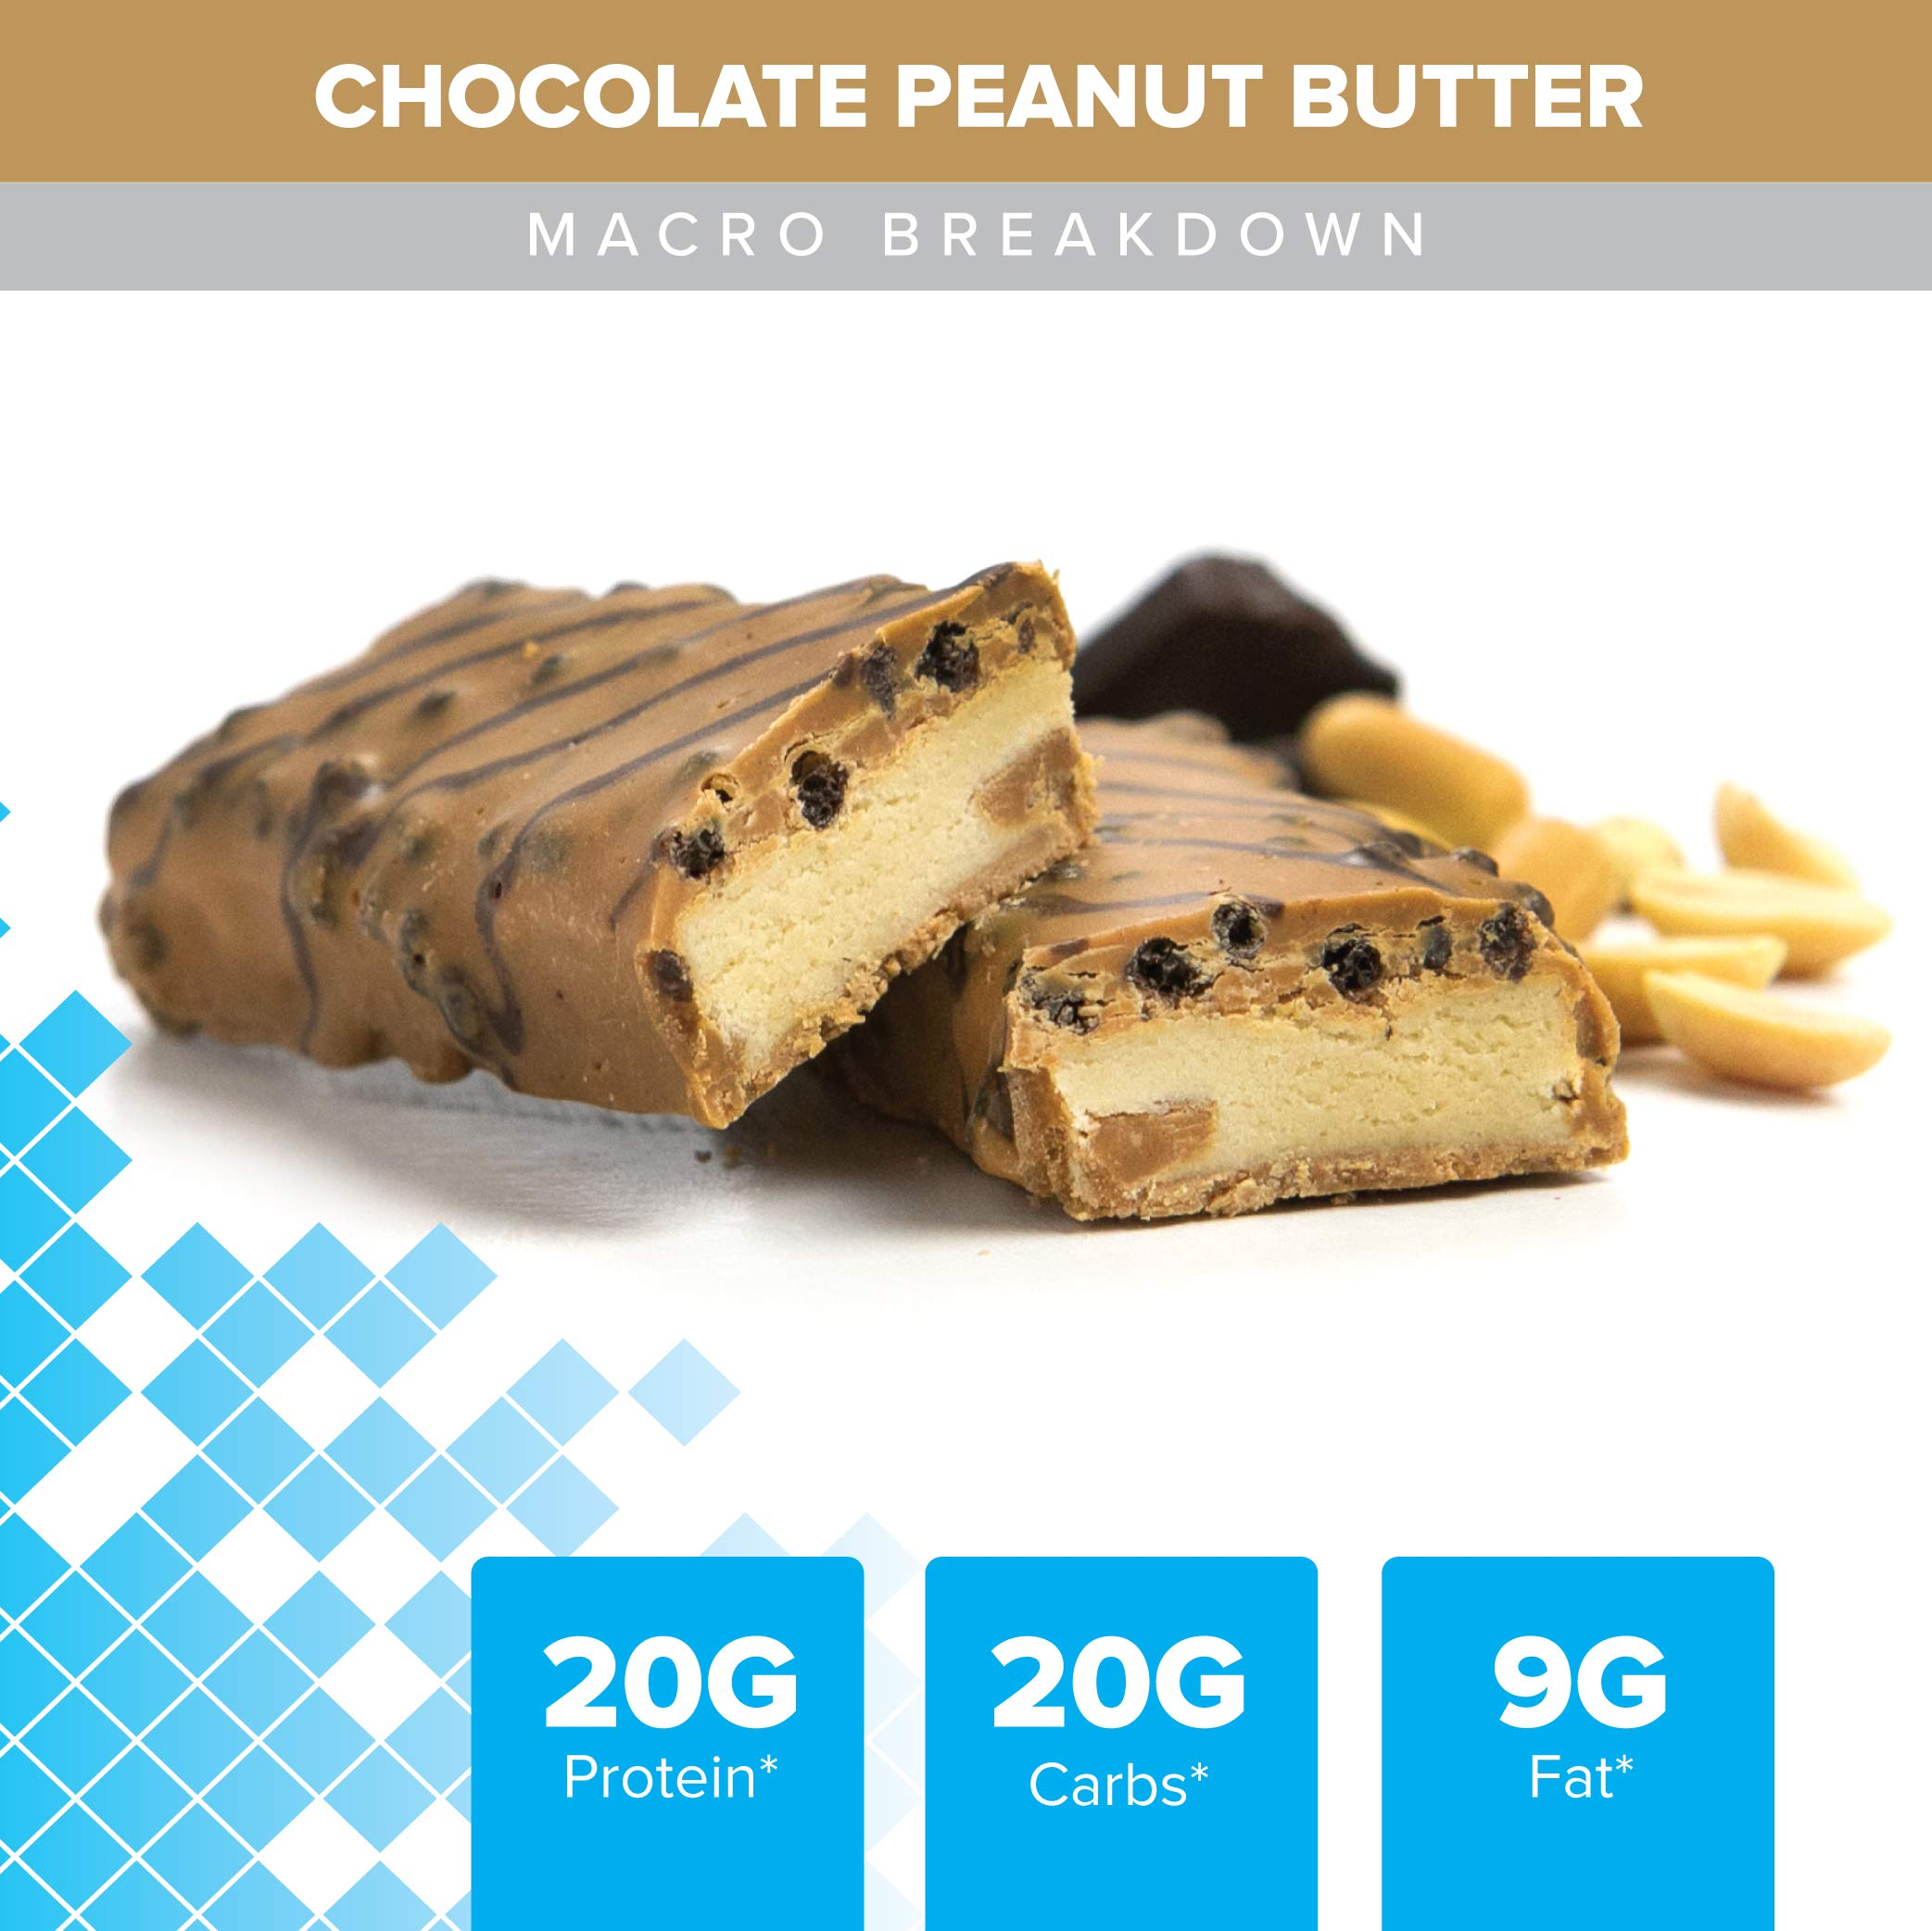 Bodybuilding Chocolate Peanut Butter Signature Protein Crunch Bar | 20g Whey Protein Low Sugar | Gluten Free No Artificial Flavors | 12 Bars by Bodybuilding.com